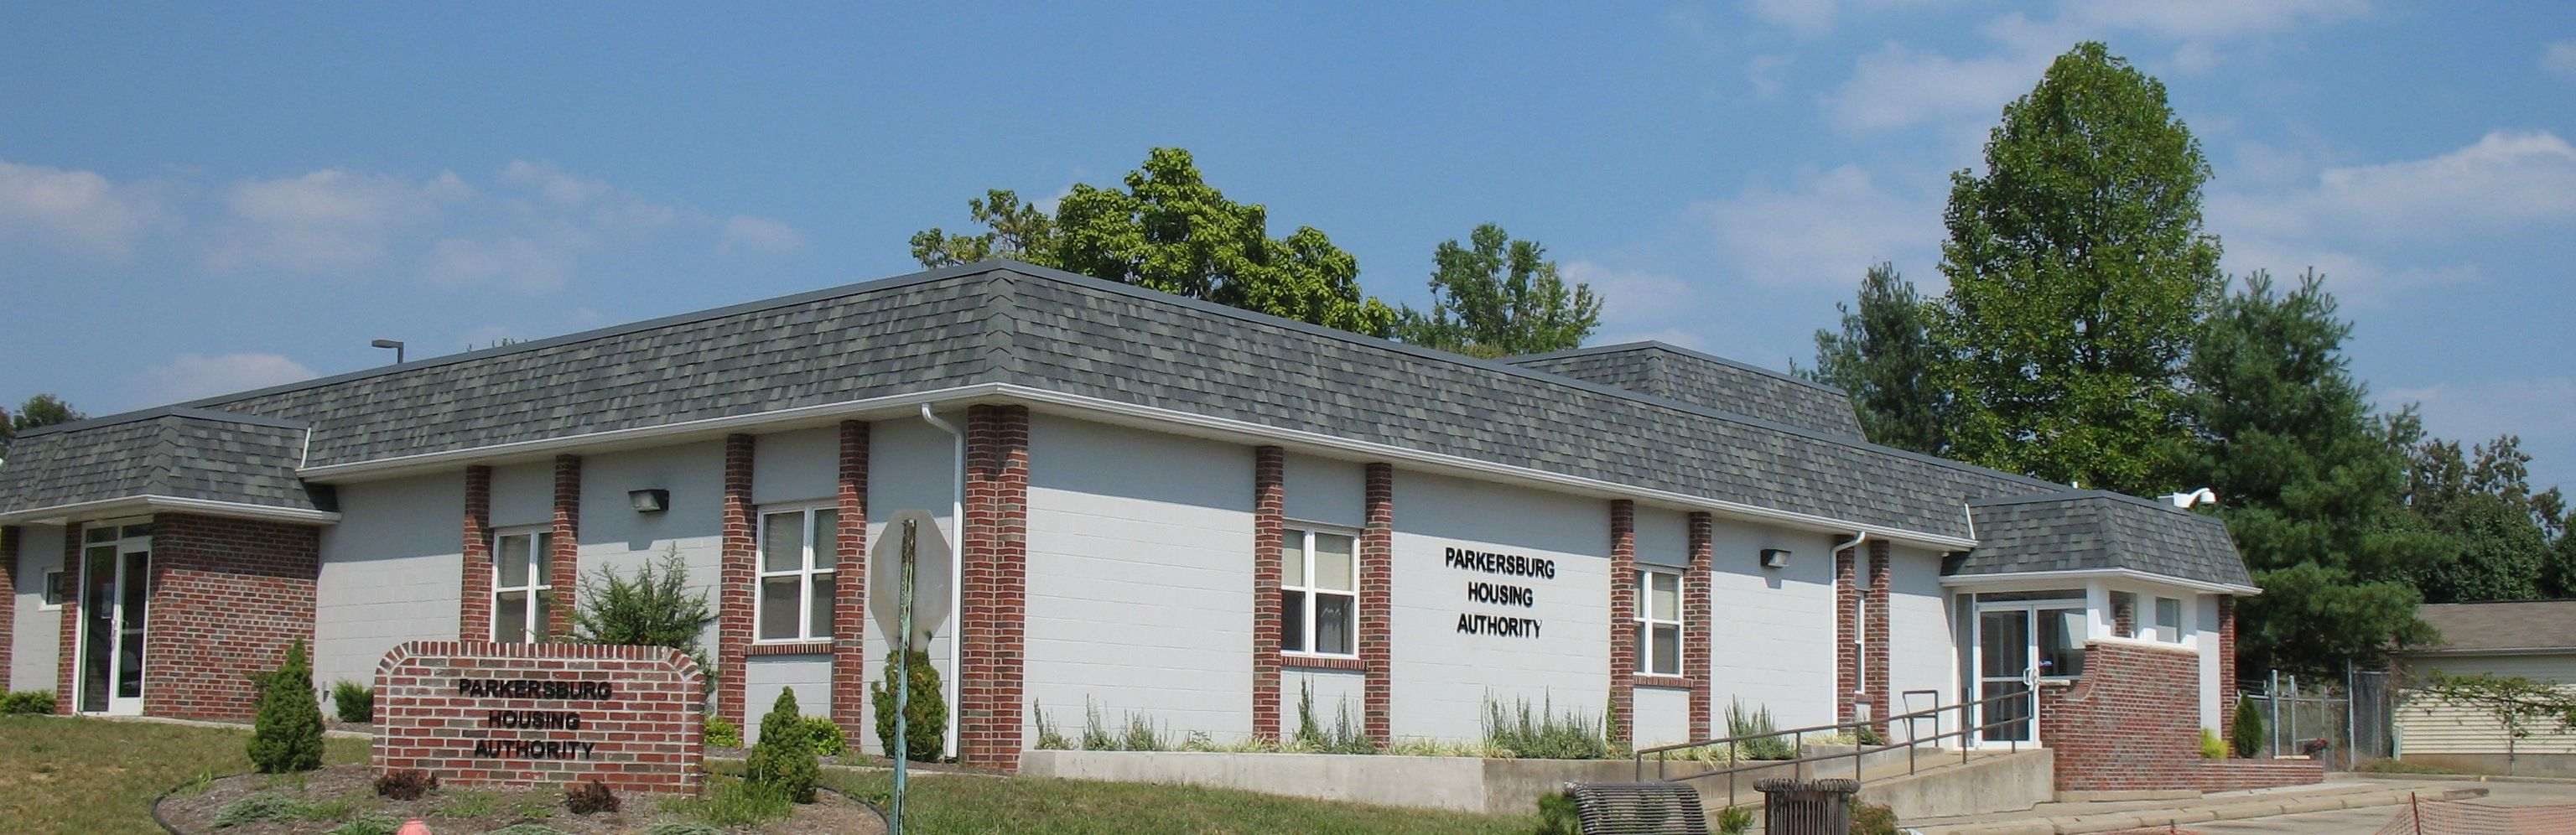 Parkersburg Housing Authority